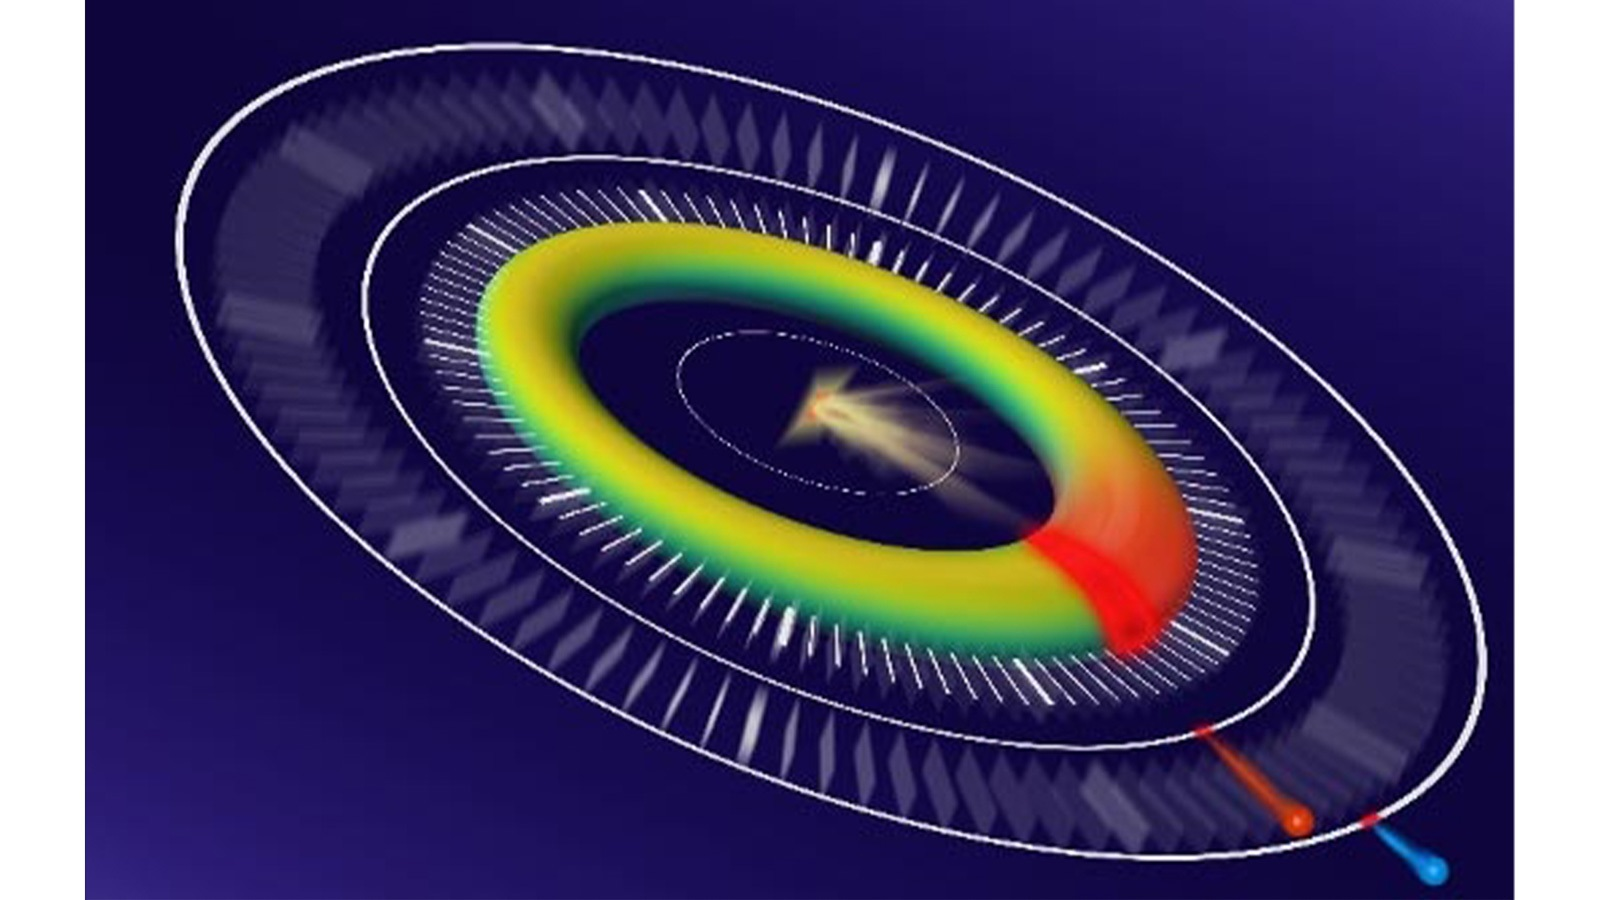 (Image by Daniel Haynes and Jörg Harms/Max Planck Institute for the Structure and Dynamics of Matter.)